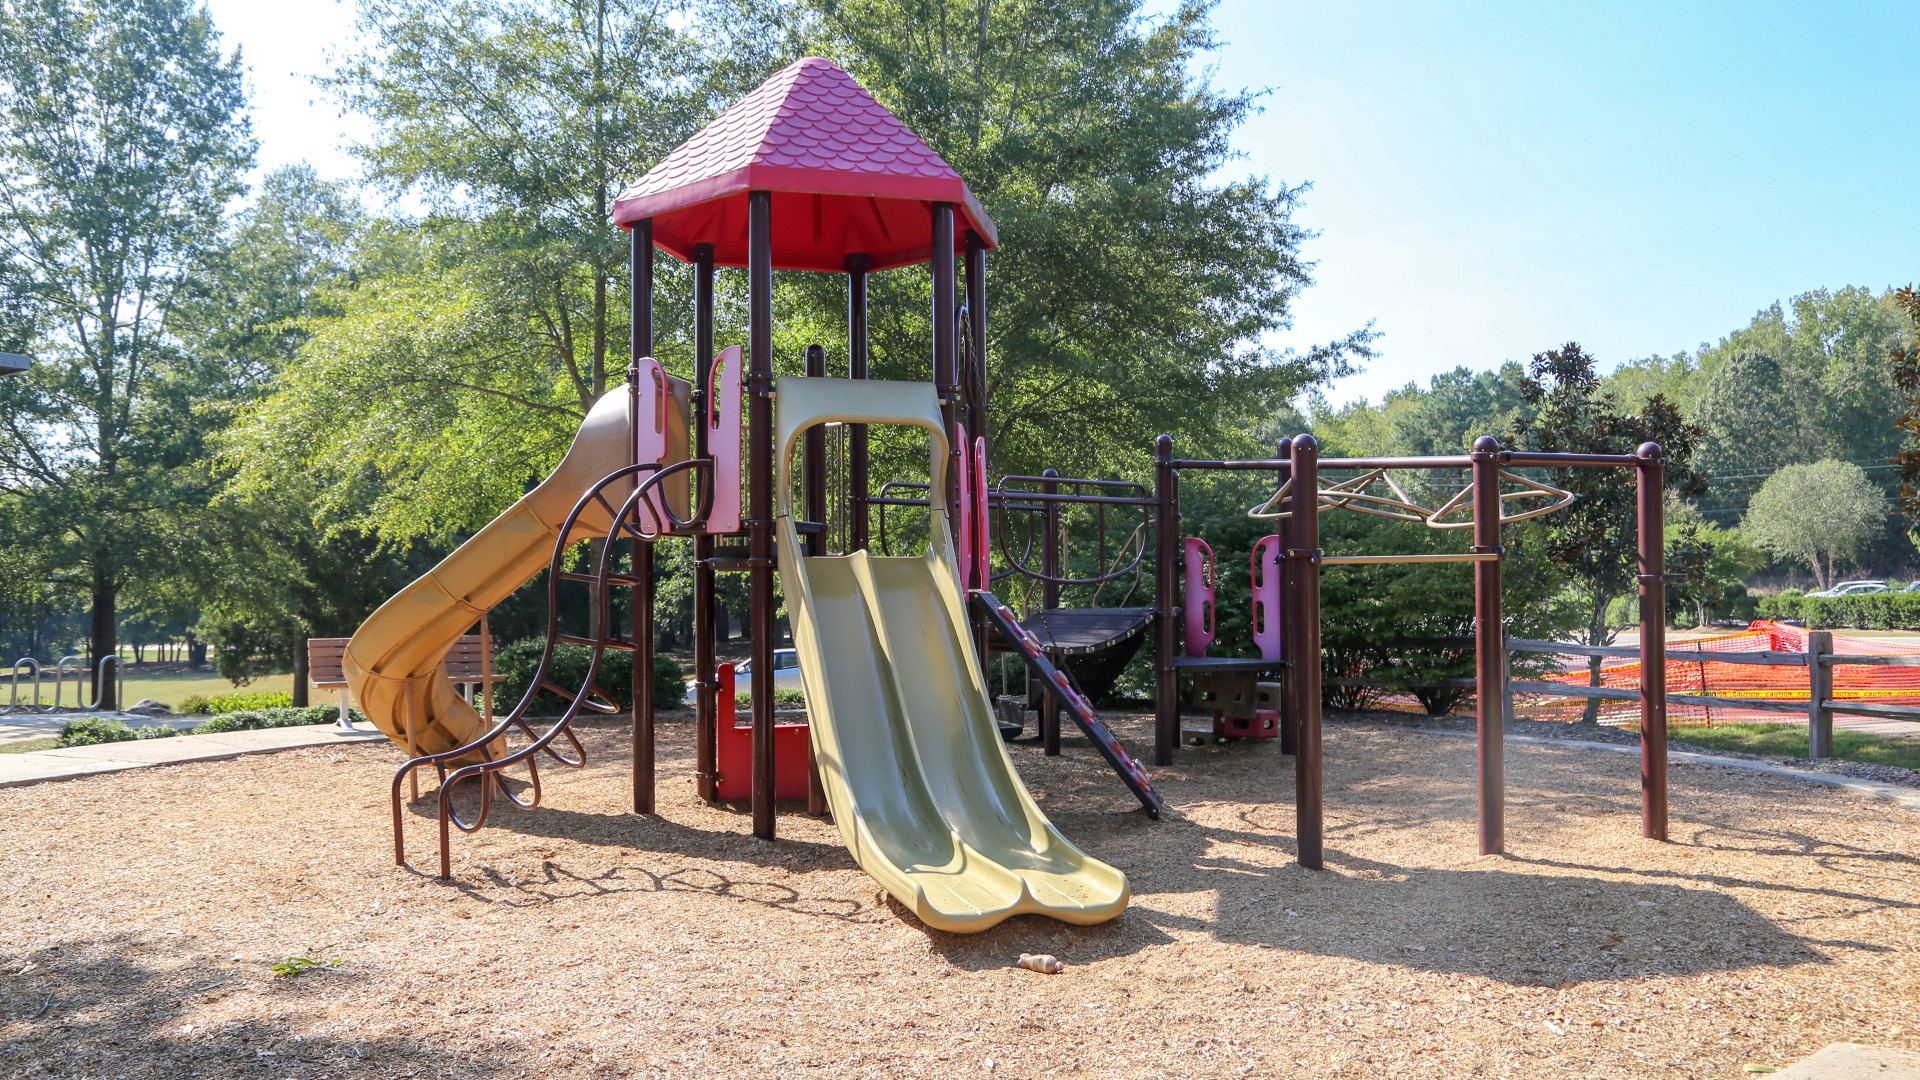 A larger playground at Buffaloe Road park with three slides, a bridge and more